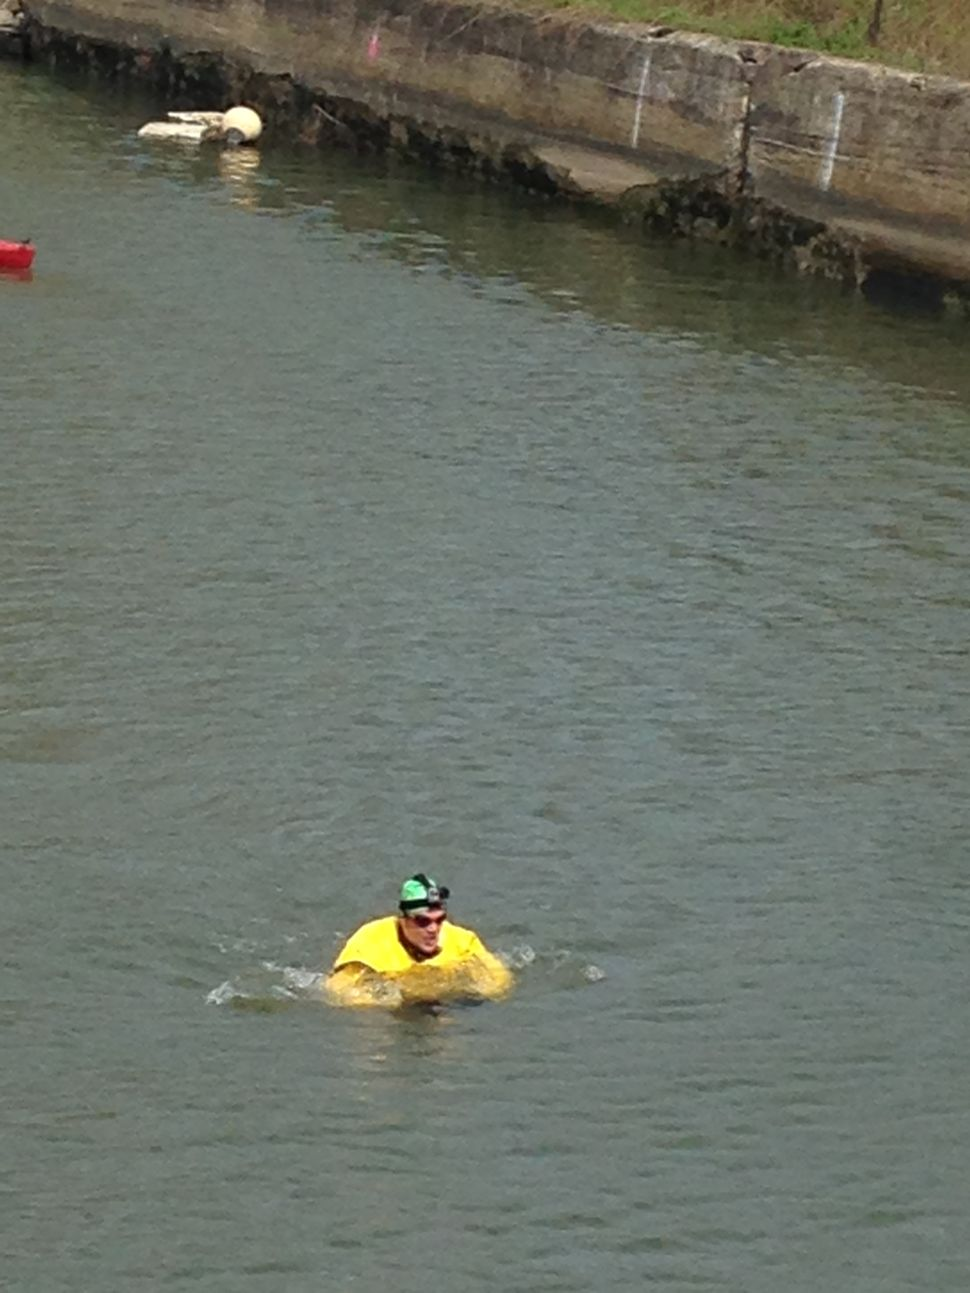 Madcap Swimmer Takes on Gowanus Canal, Again